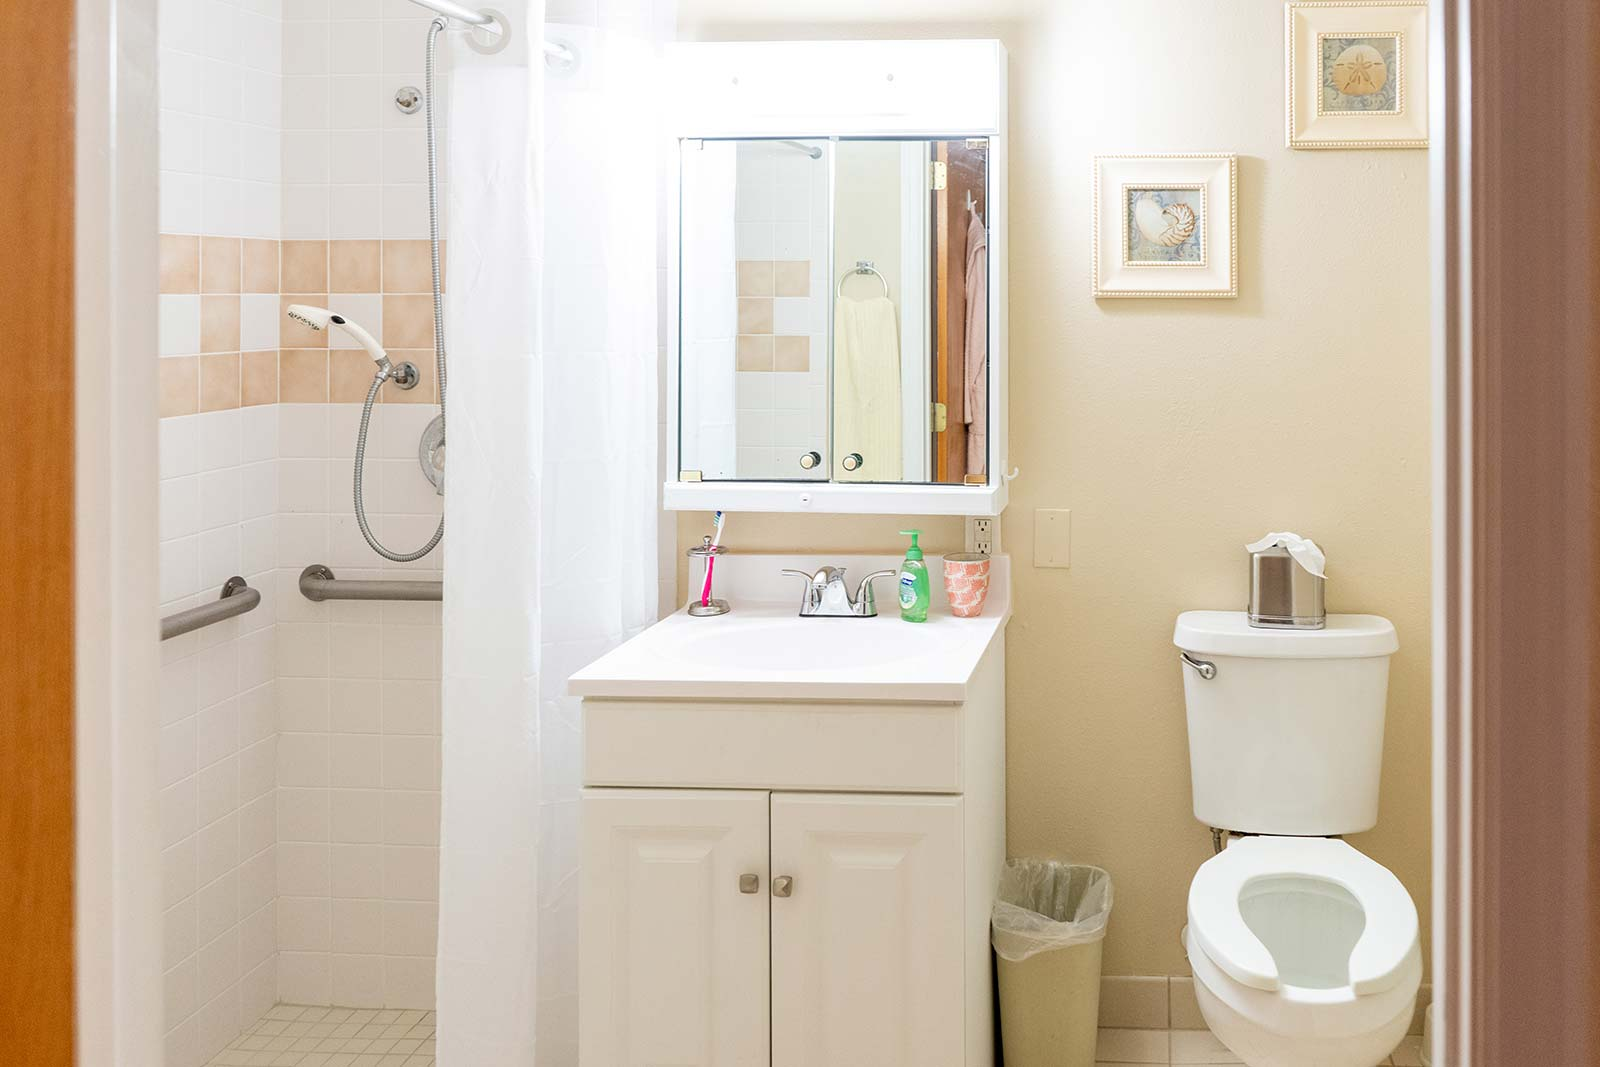 Model apartment bathroom at Heron House assisted living and memory care community in Sarasota, FL